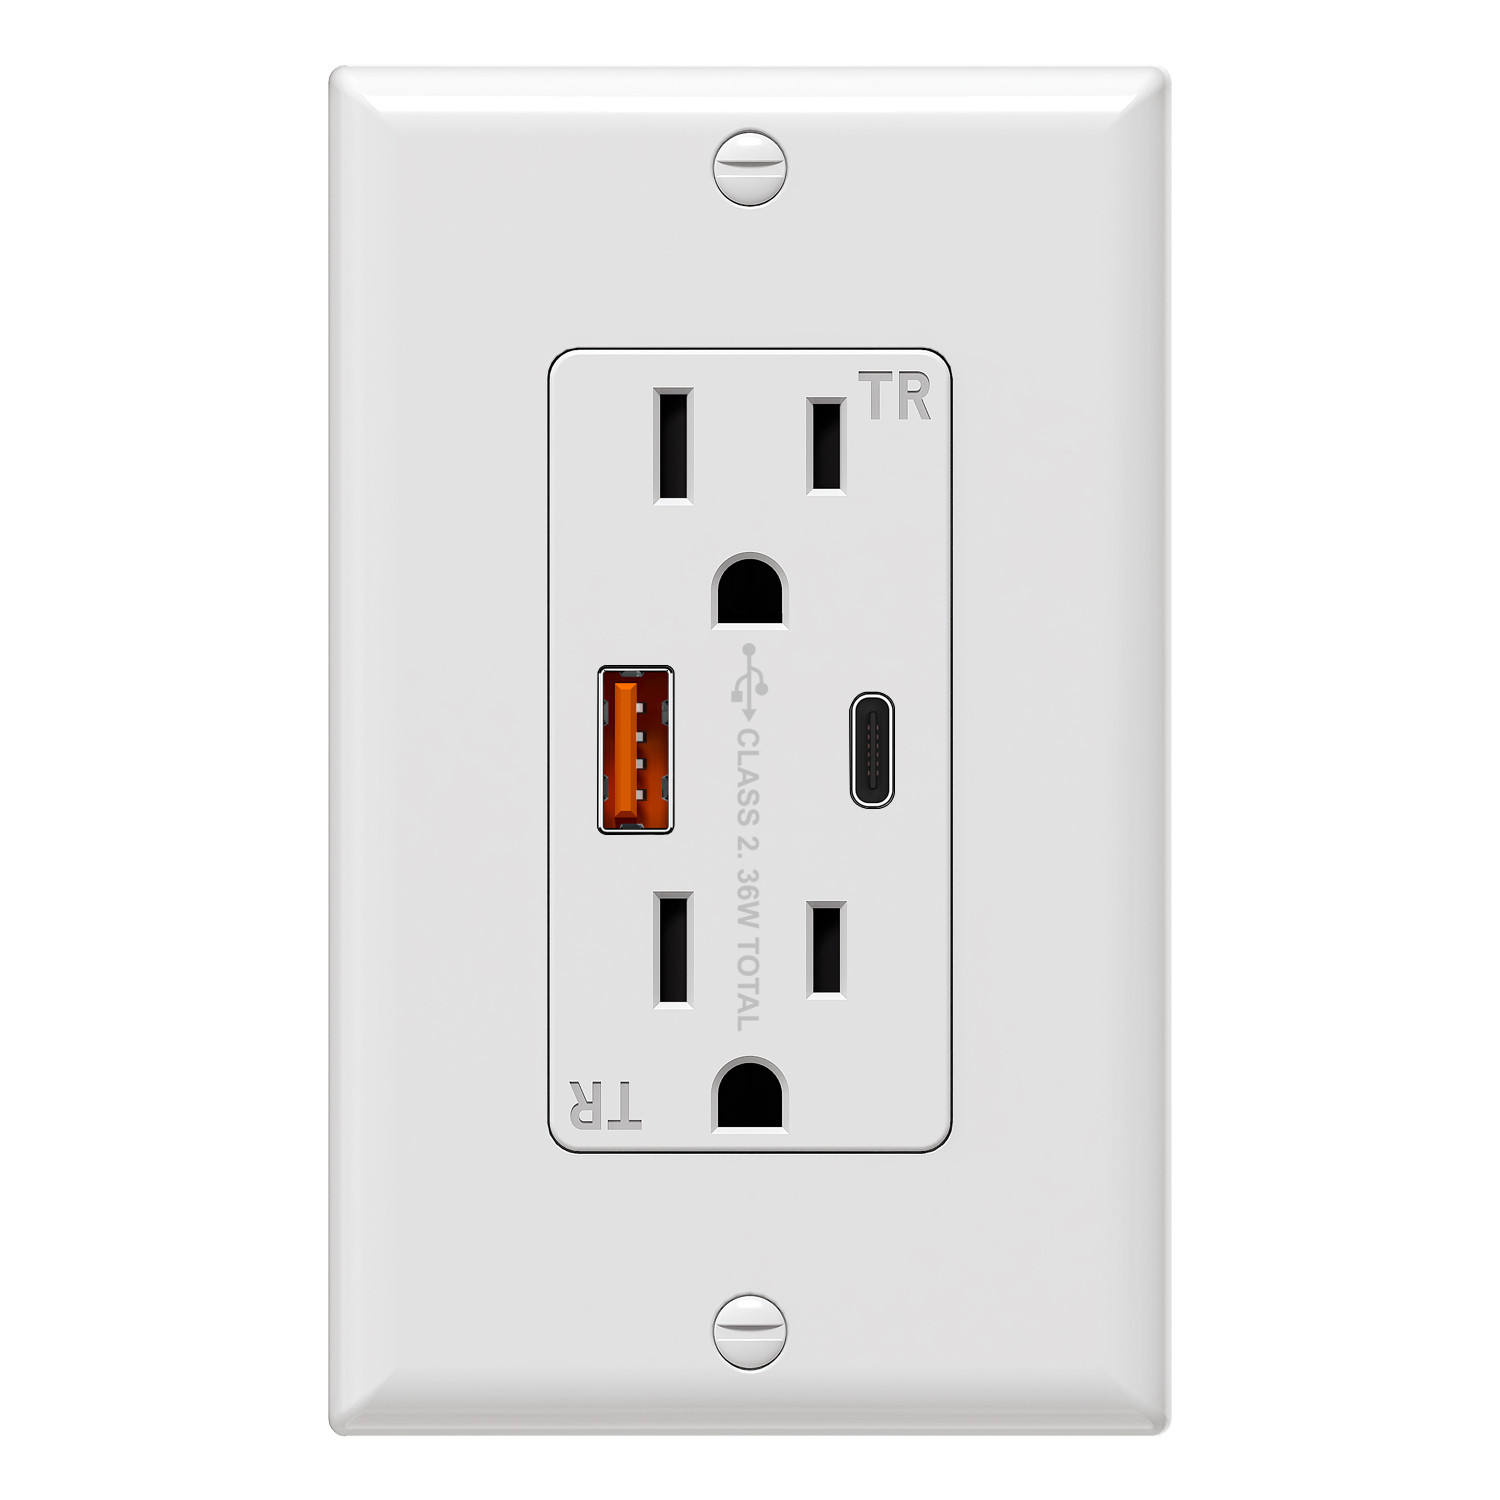 20A type C USB Wall outlet USB Wall Charge TR receptacle electrical outlet